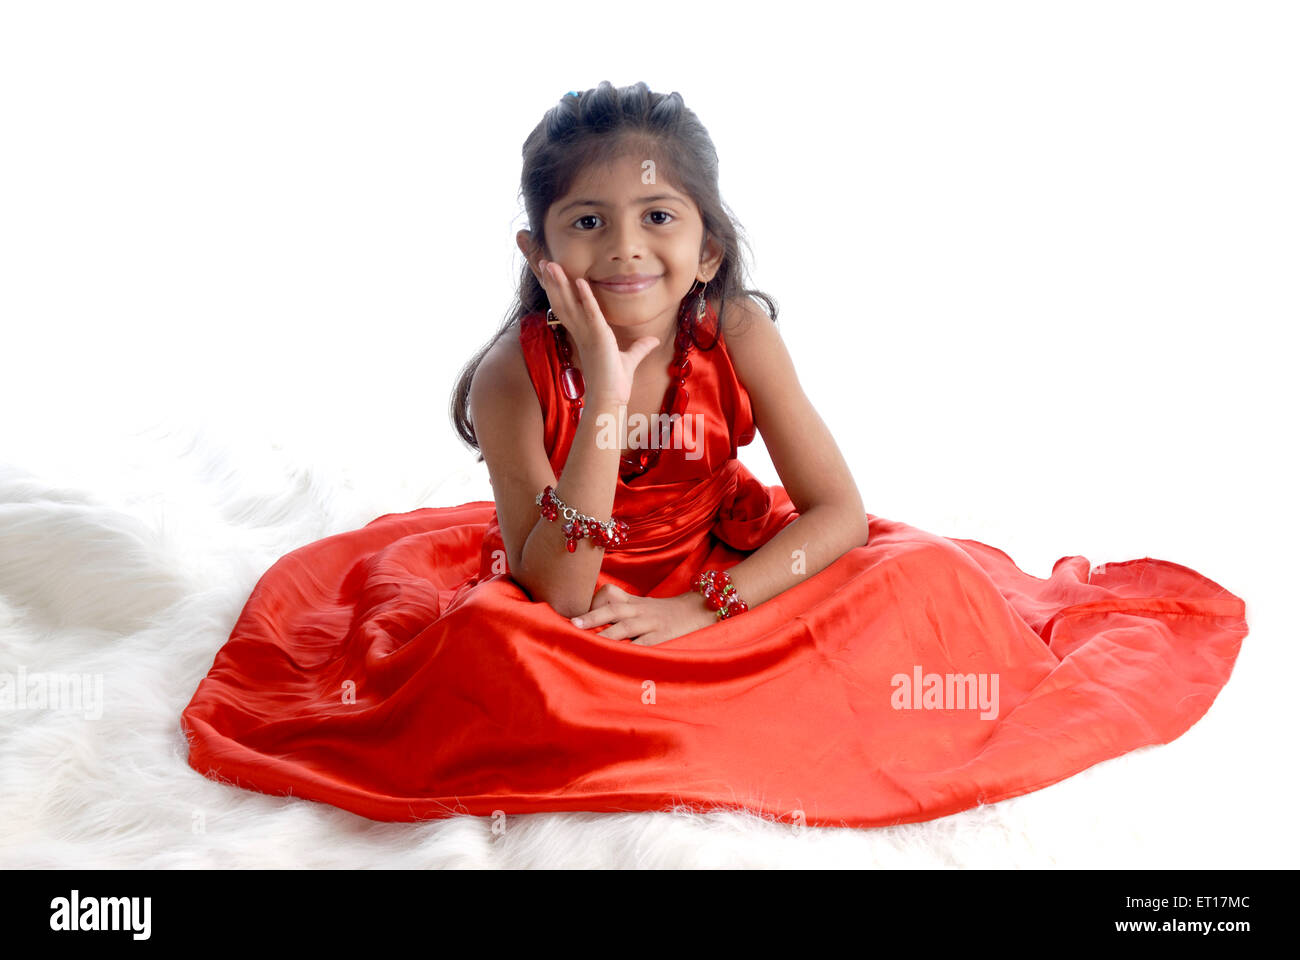 Indian baby girl child sitting hand on face red dress white background - MR#736M - rmm 151197 - Stock Image